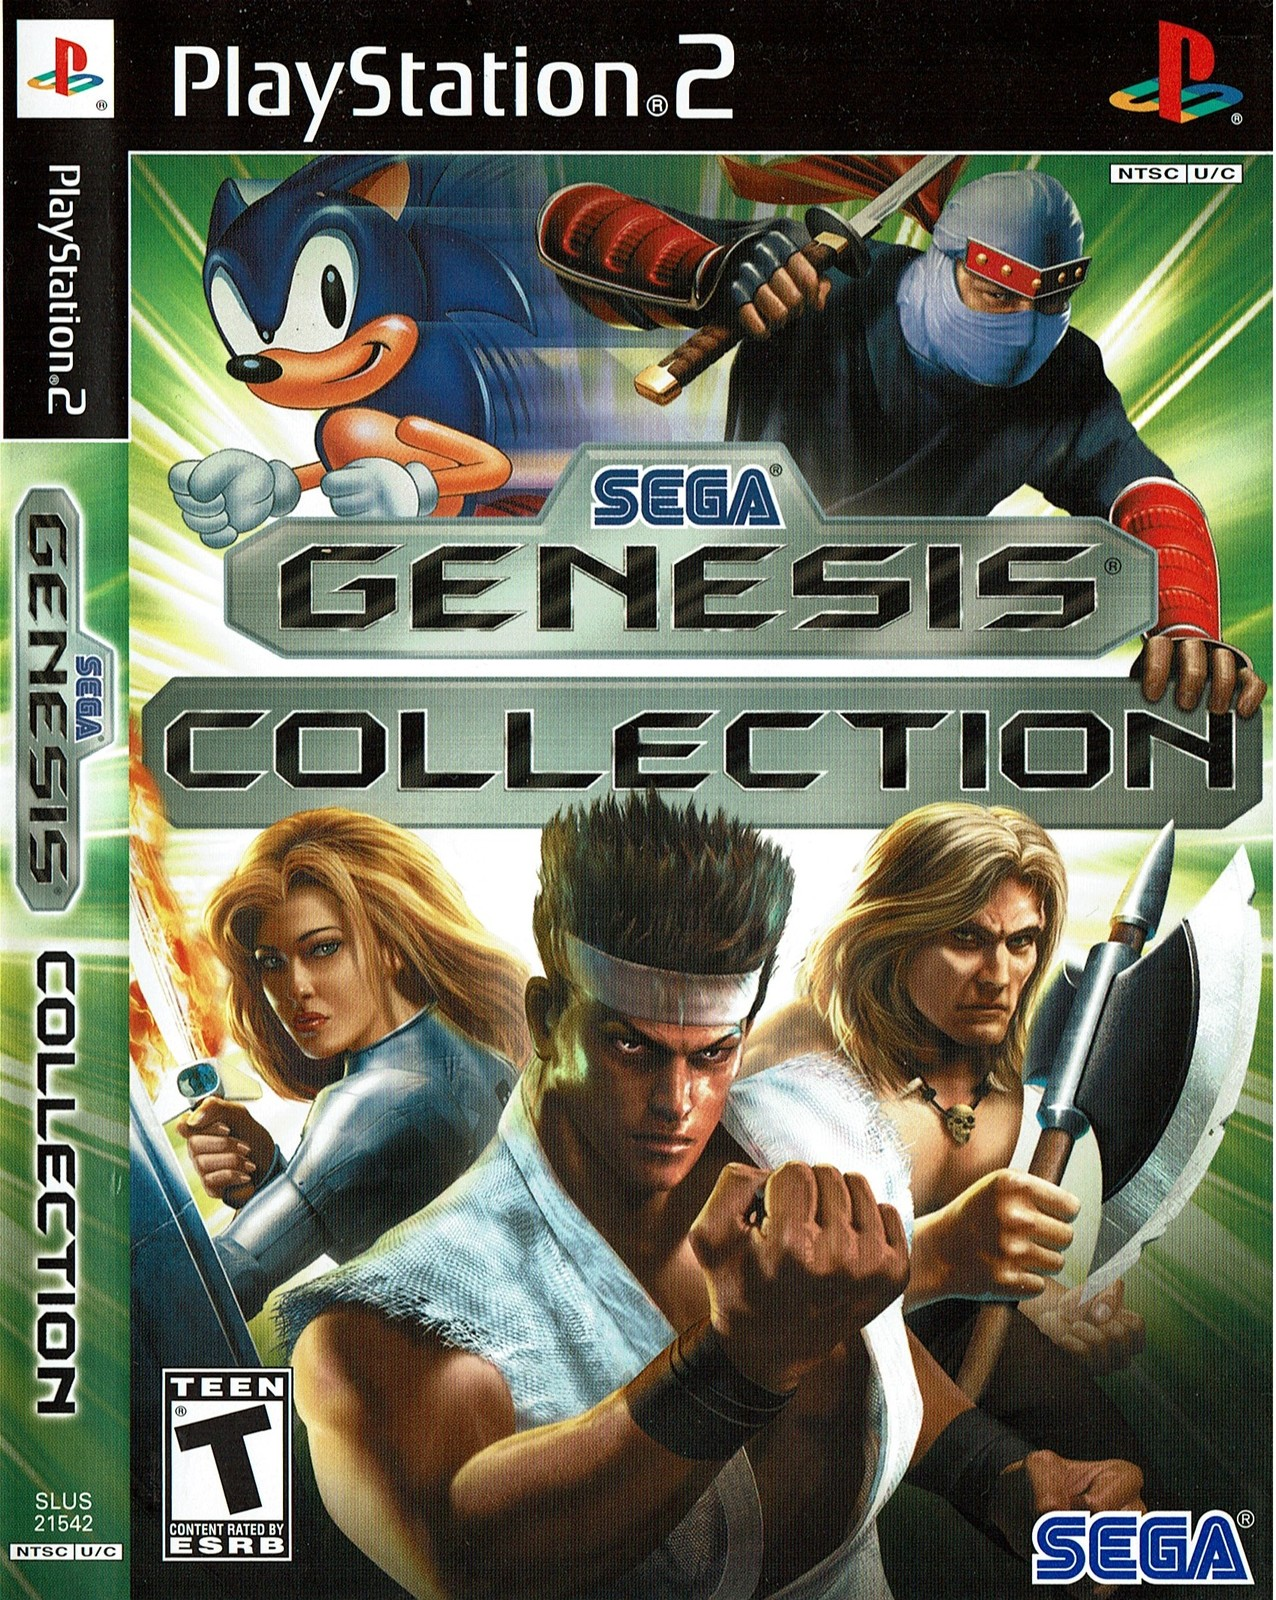 Sega Genesis Collection, Playstation 2 PS2, Game Complete (SLUS-21542)